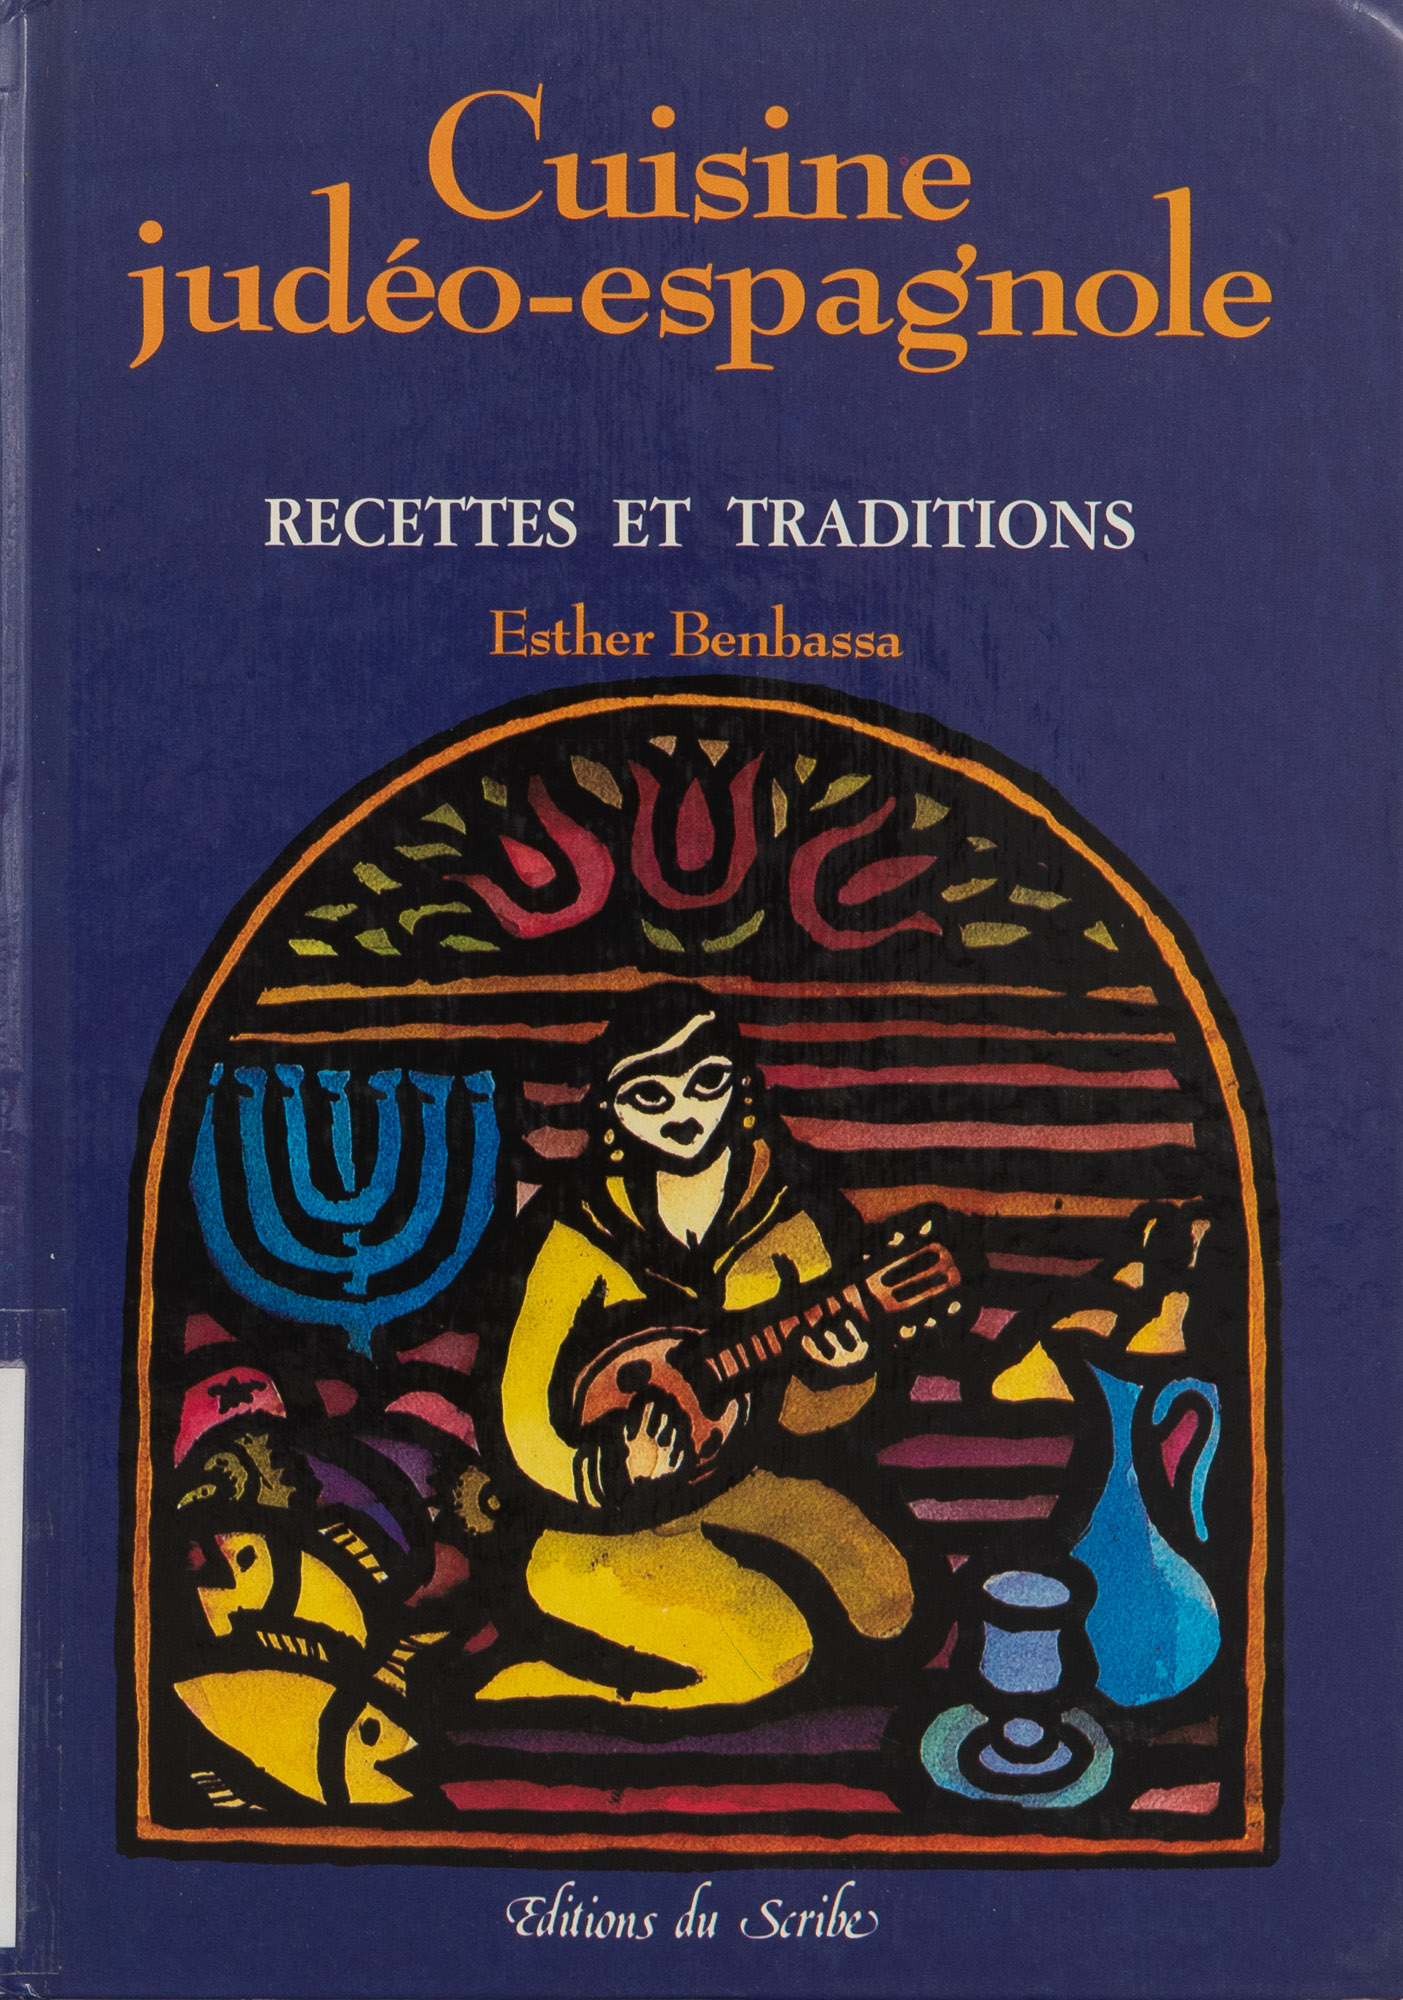 The cover of the French-language cookbook Cuisine Judéo-Espagnole: Recettes et Traditions